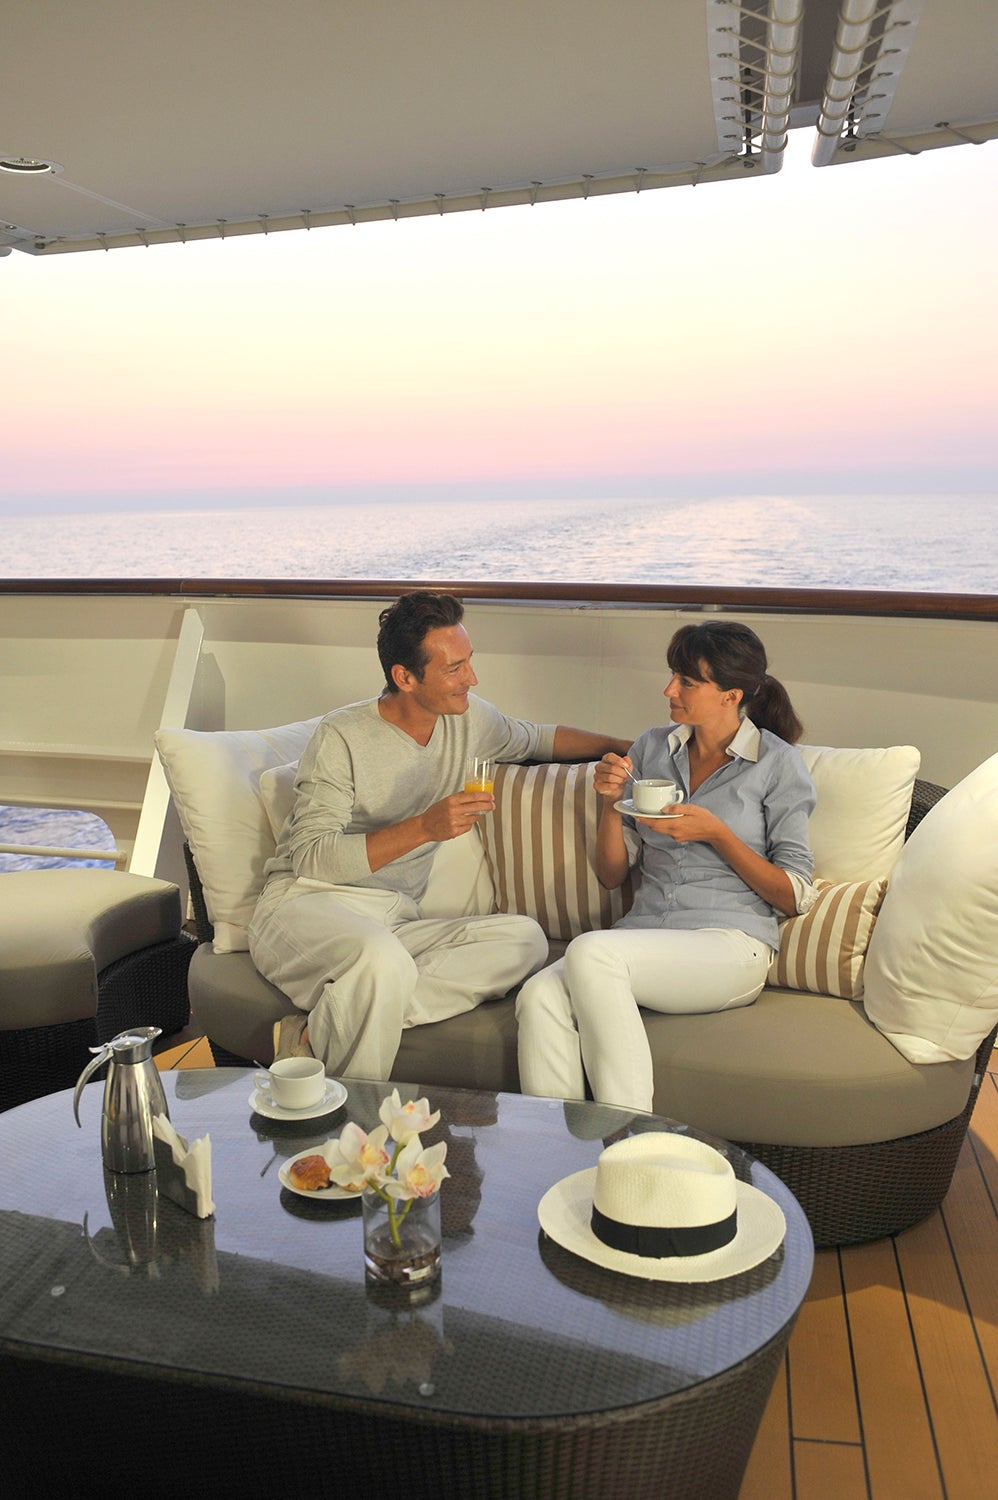 Ponant onboard experience